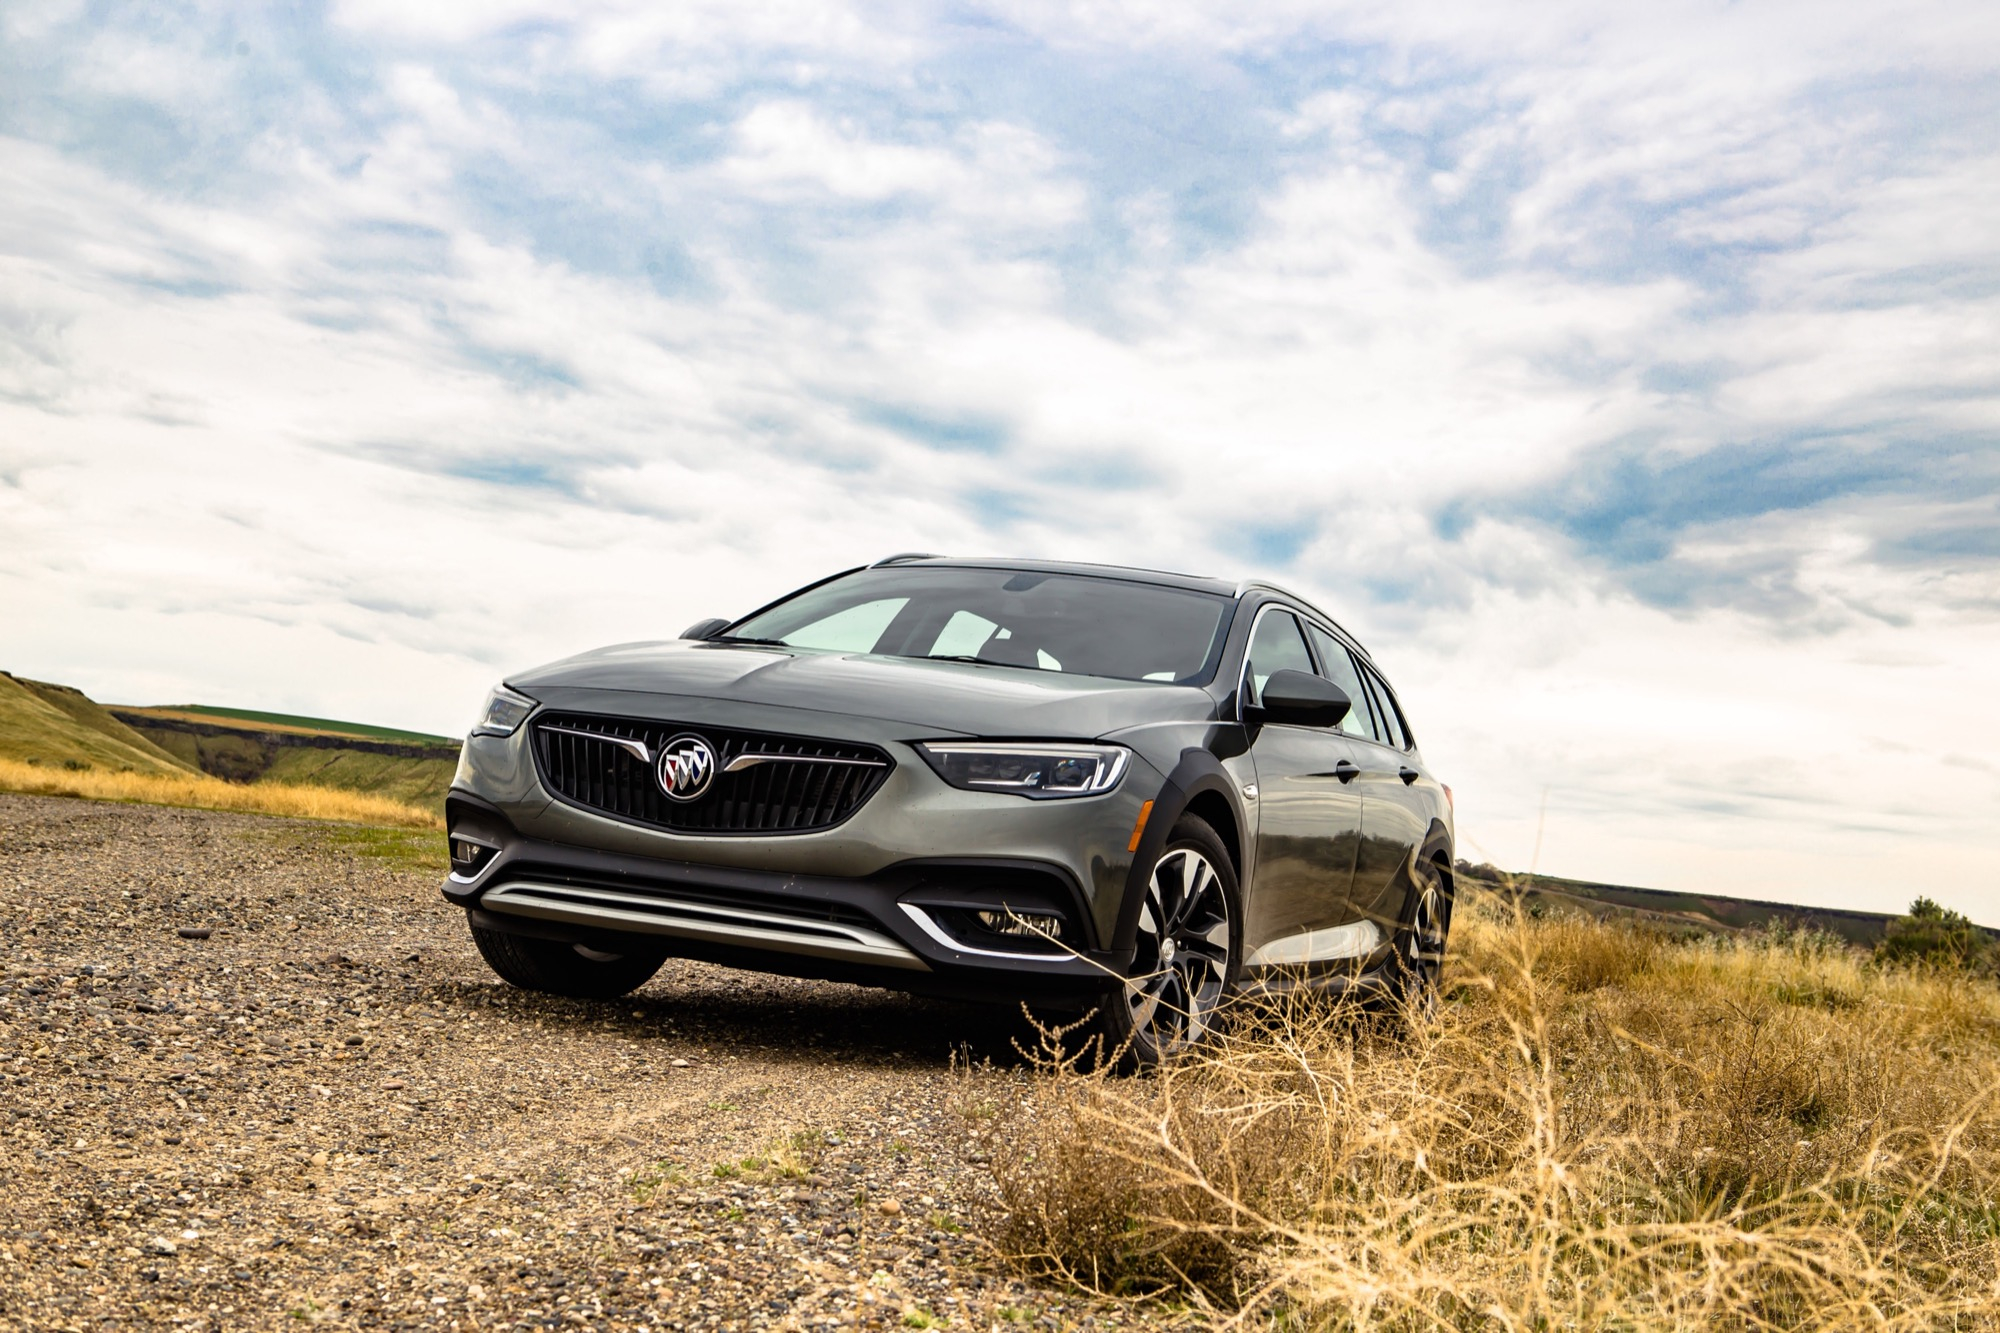 Does Buick Even Want To Sell The Regal Tourx? | Gm Authority 2021 Buick Regal Tourx Accessories, Changes, Release Date